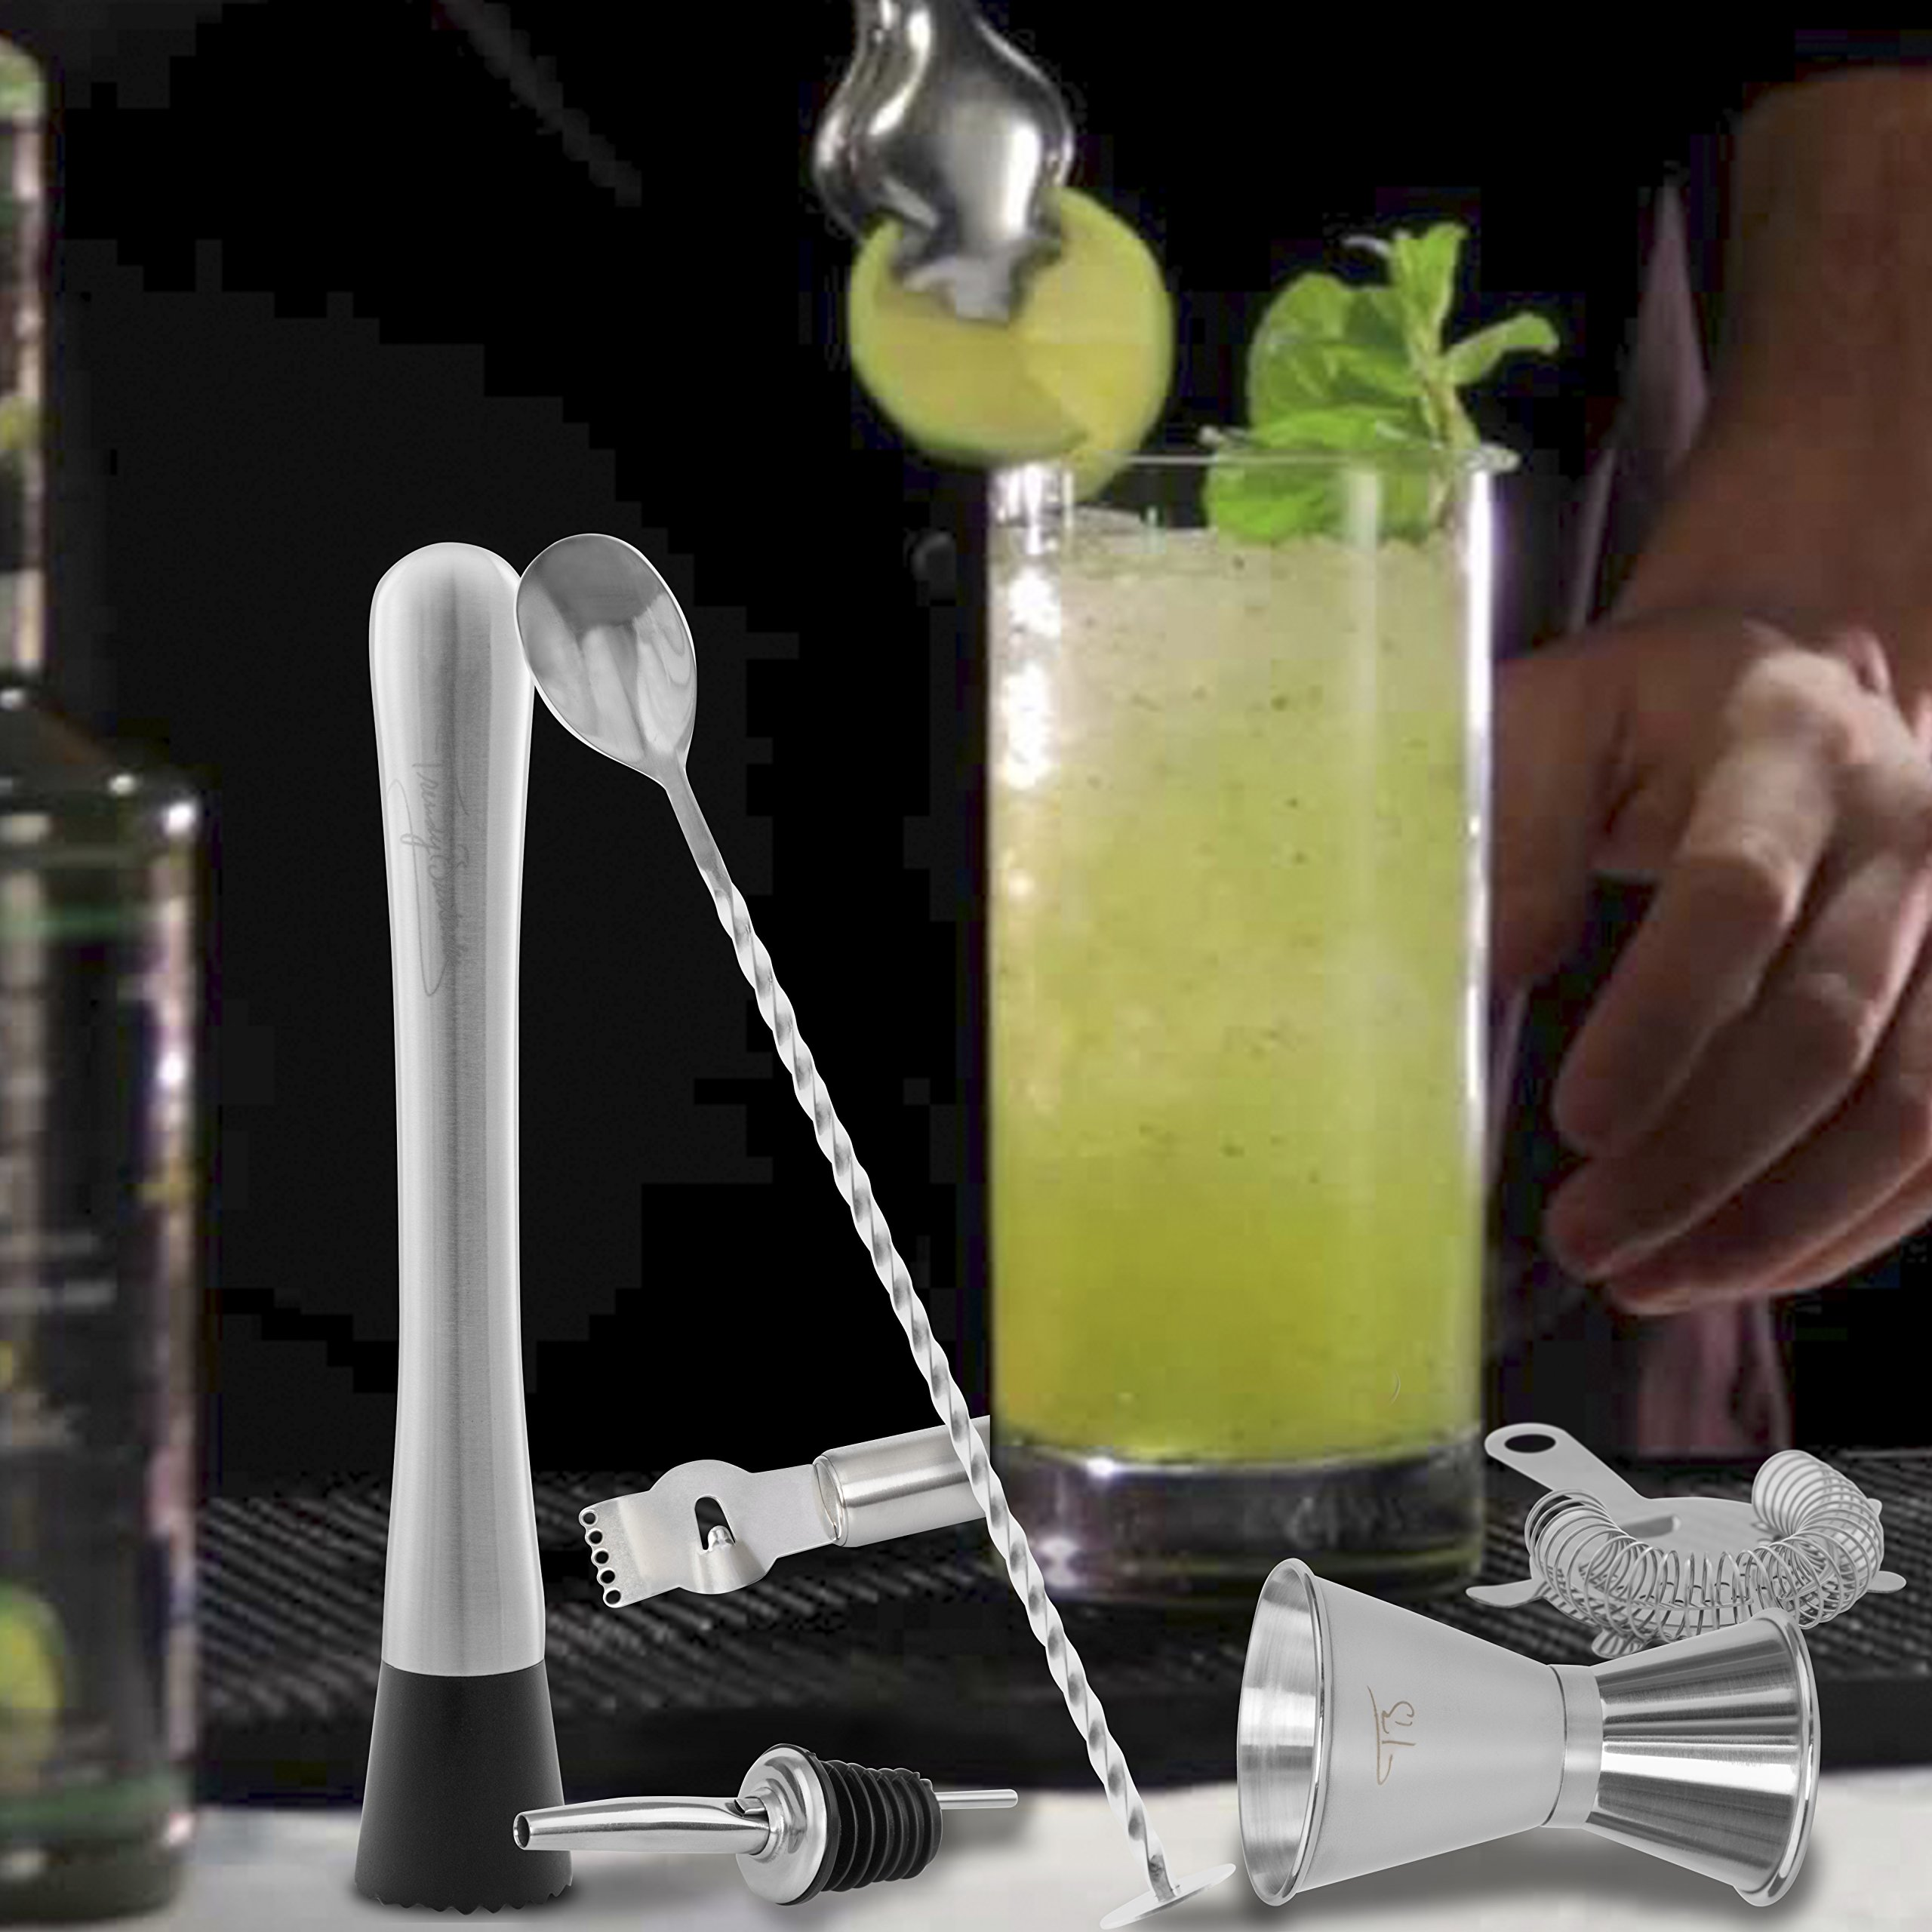 Bar Tool Essentials Deluxe - Bar Set with 6 Crafted Stainless Steel Bar Tools for Your Bar Cart by Trendy Bartender - Muddler, Cocktail Spoon, Jigger, Pourer, Zester & Strainer - Mix With Style